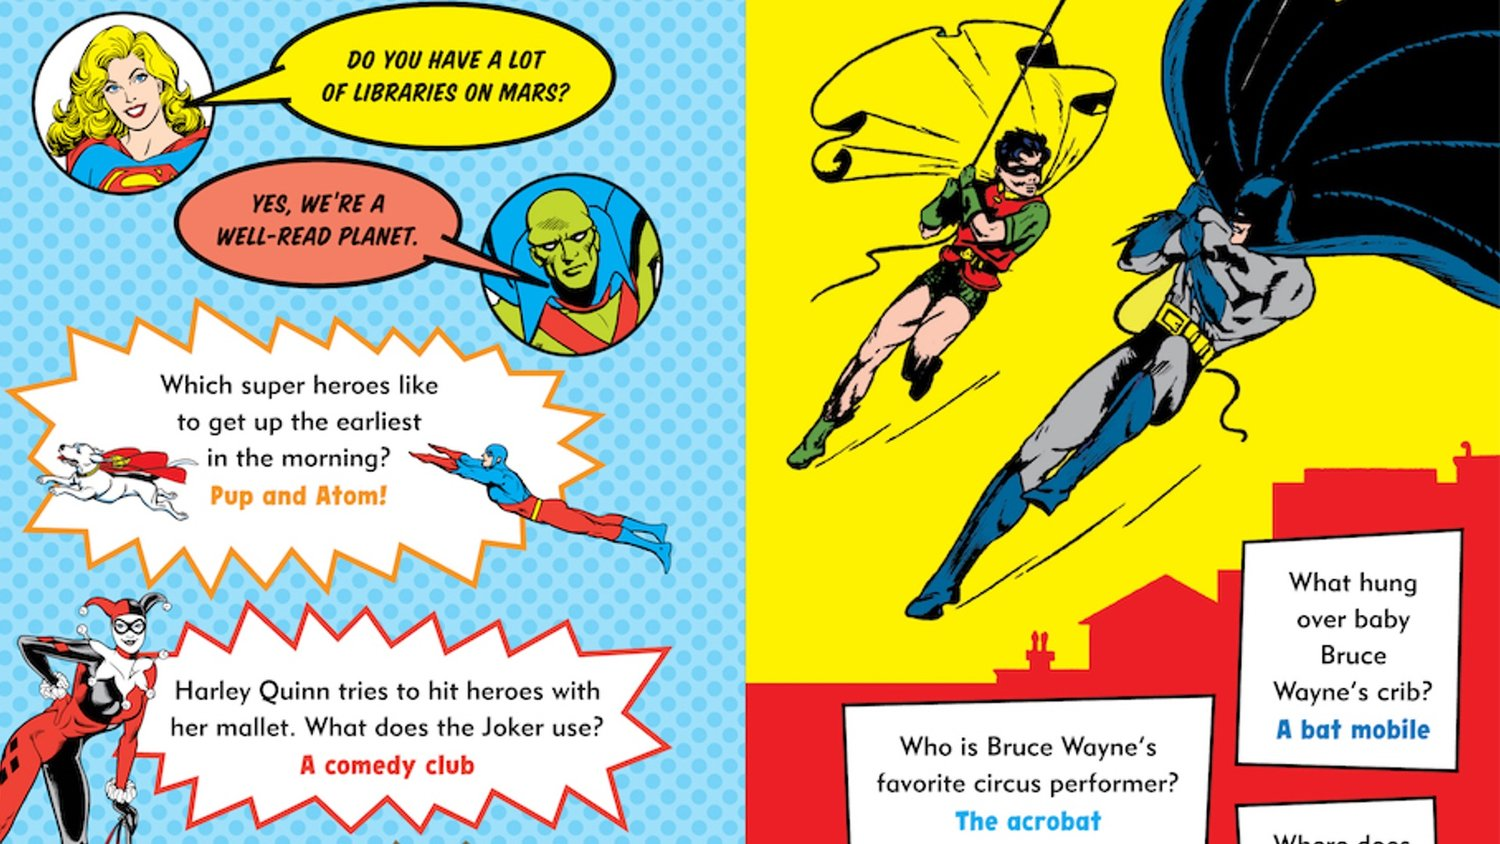 There's an Official DC Superhero Joke Book Filled With the Worst Jokes Ever!